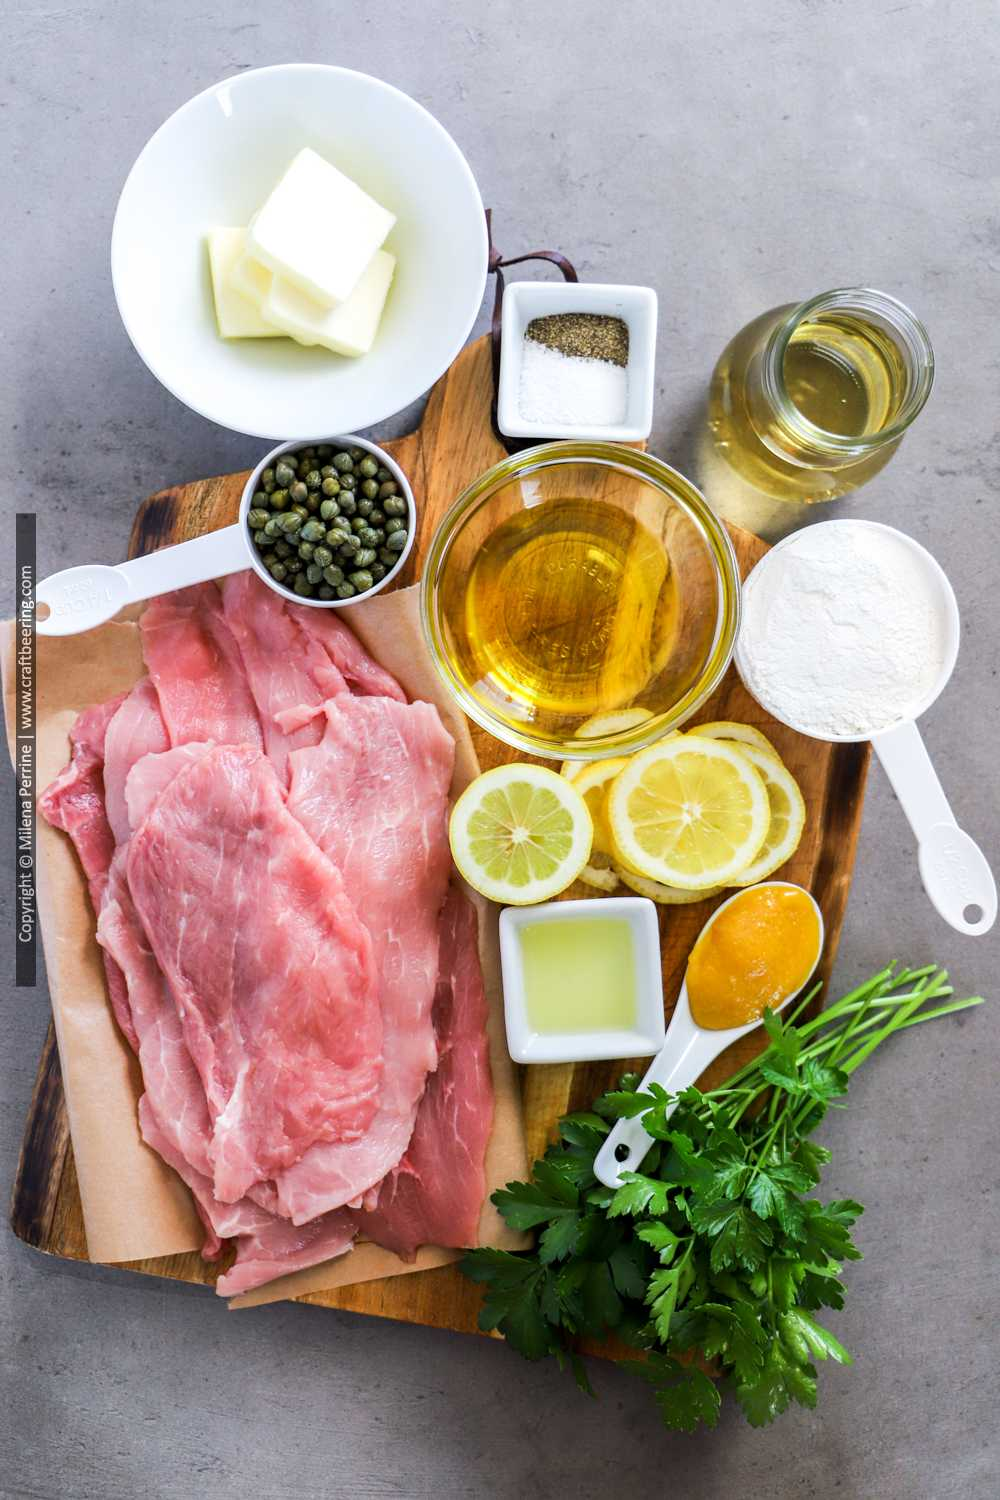 Raw veal scallopini and ingredients for piccata sauce.